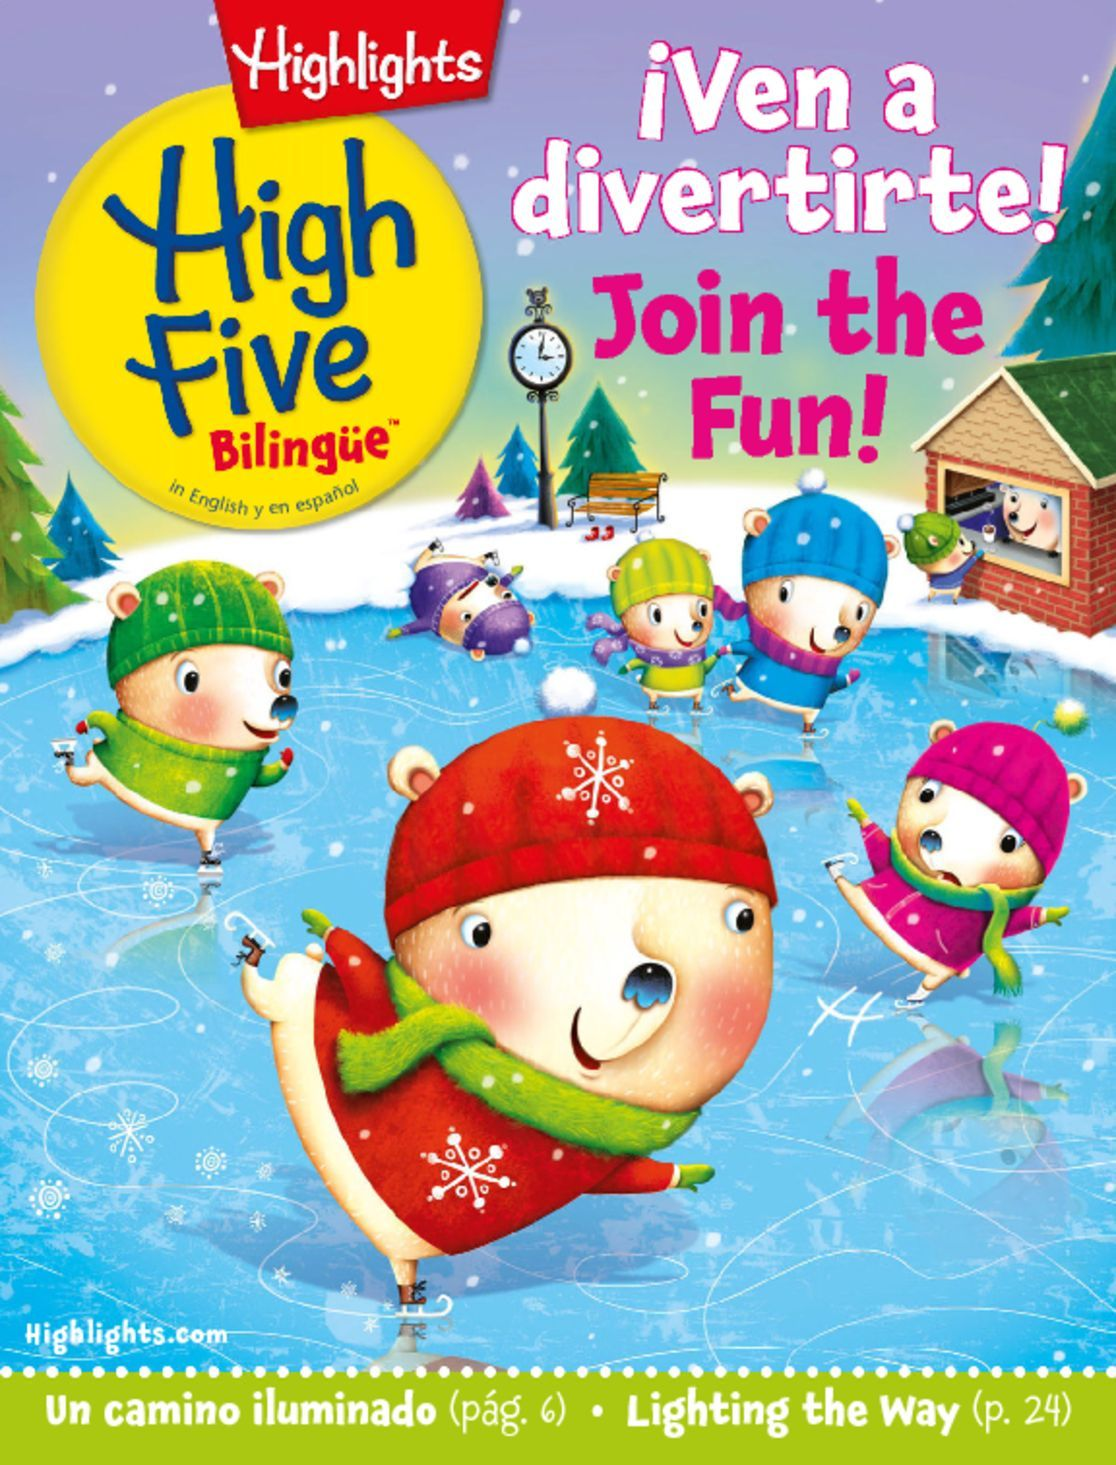 Highlights High Five Bilingue Magazine Subscription